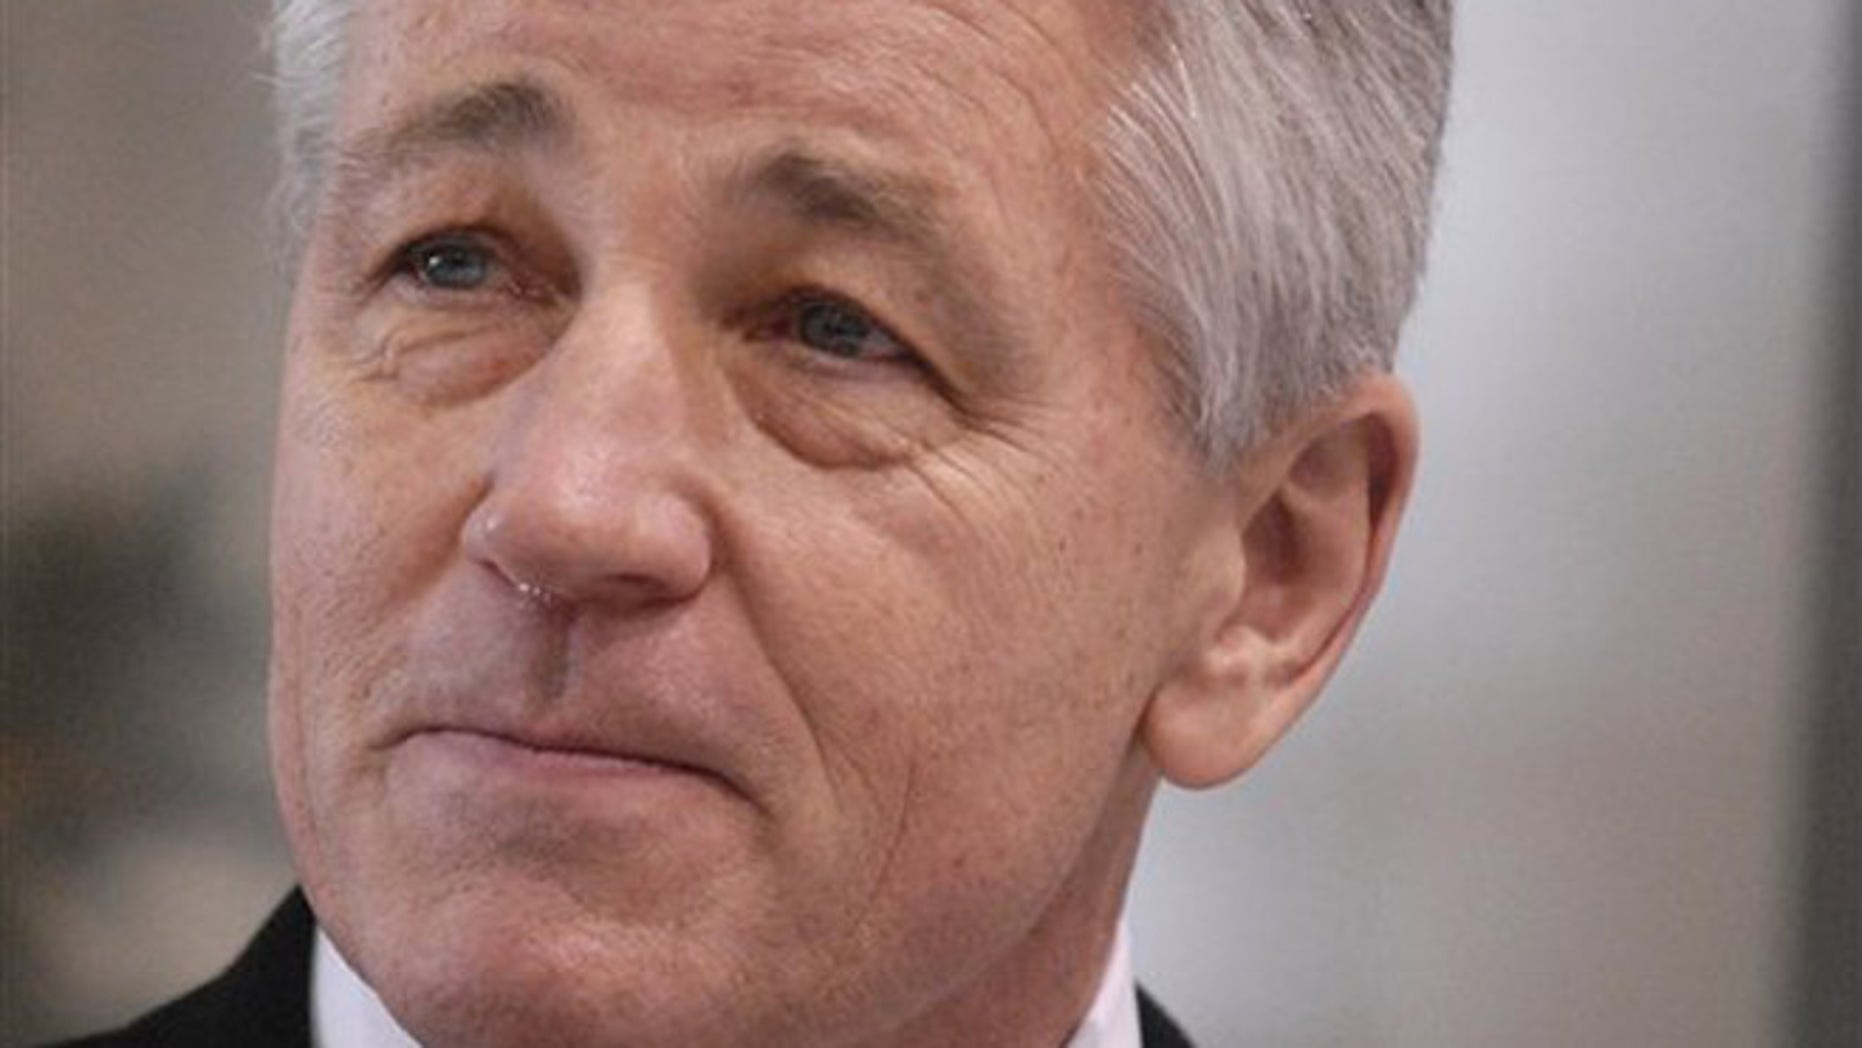 FILE: Undated: then-Nebraska Sen. Chuck Hagel in Omaha, Neb.